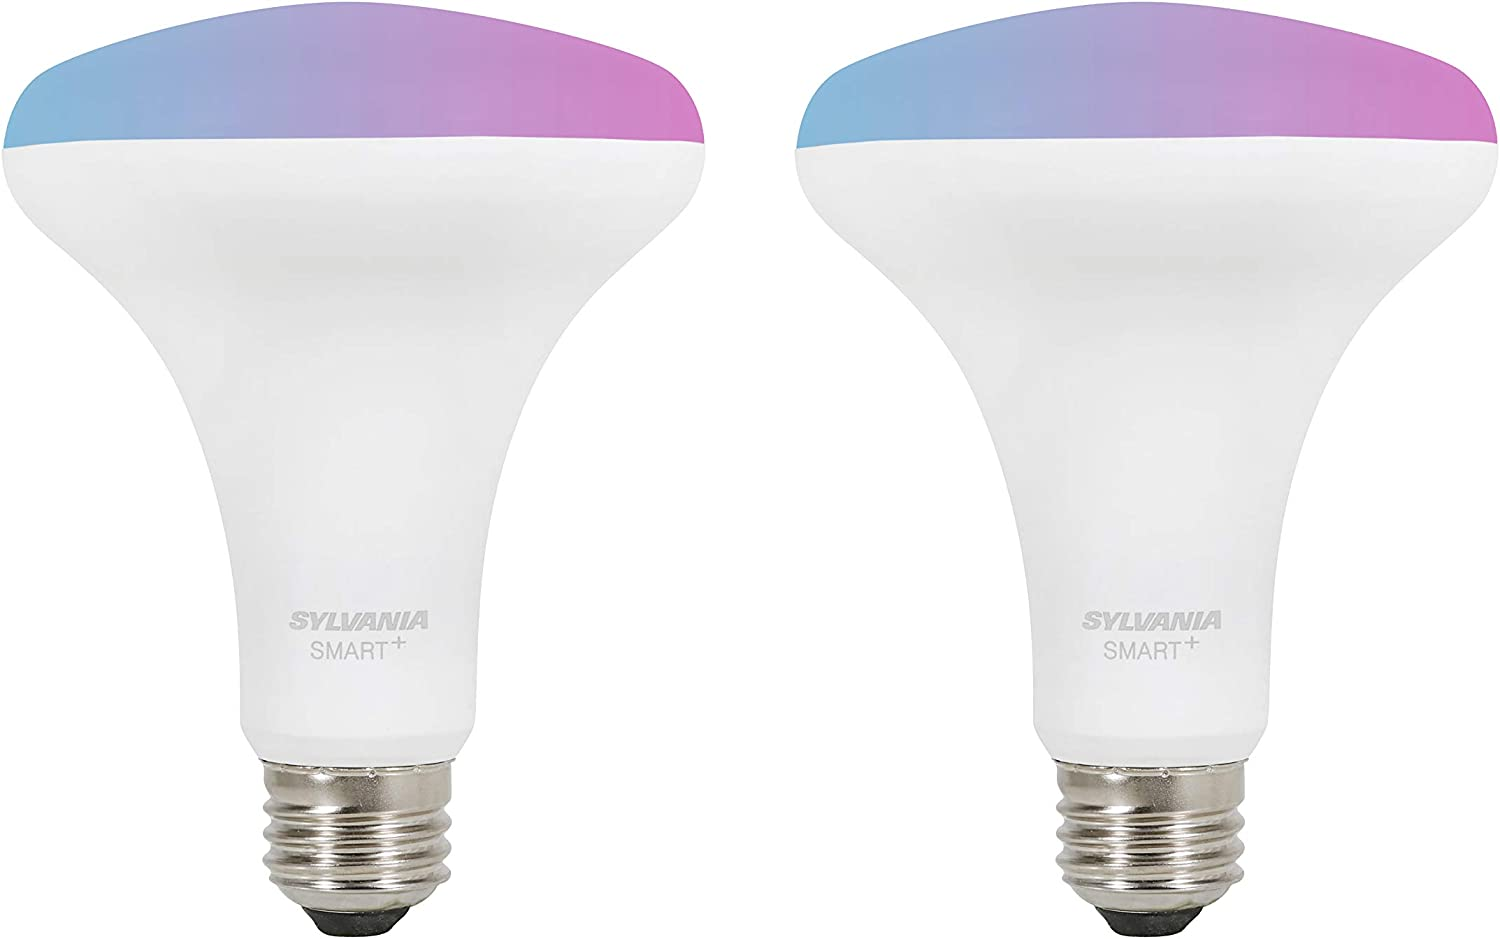 SYLVANIA Bluetooth Mesh LED Smart Light Bulb, One Touch Set Up, BR30 65W Replacement, E26, RGBW Full Color & Adjustable White, Works with Alexa Only - 2 PK (75762)